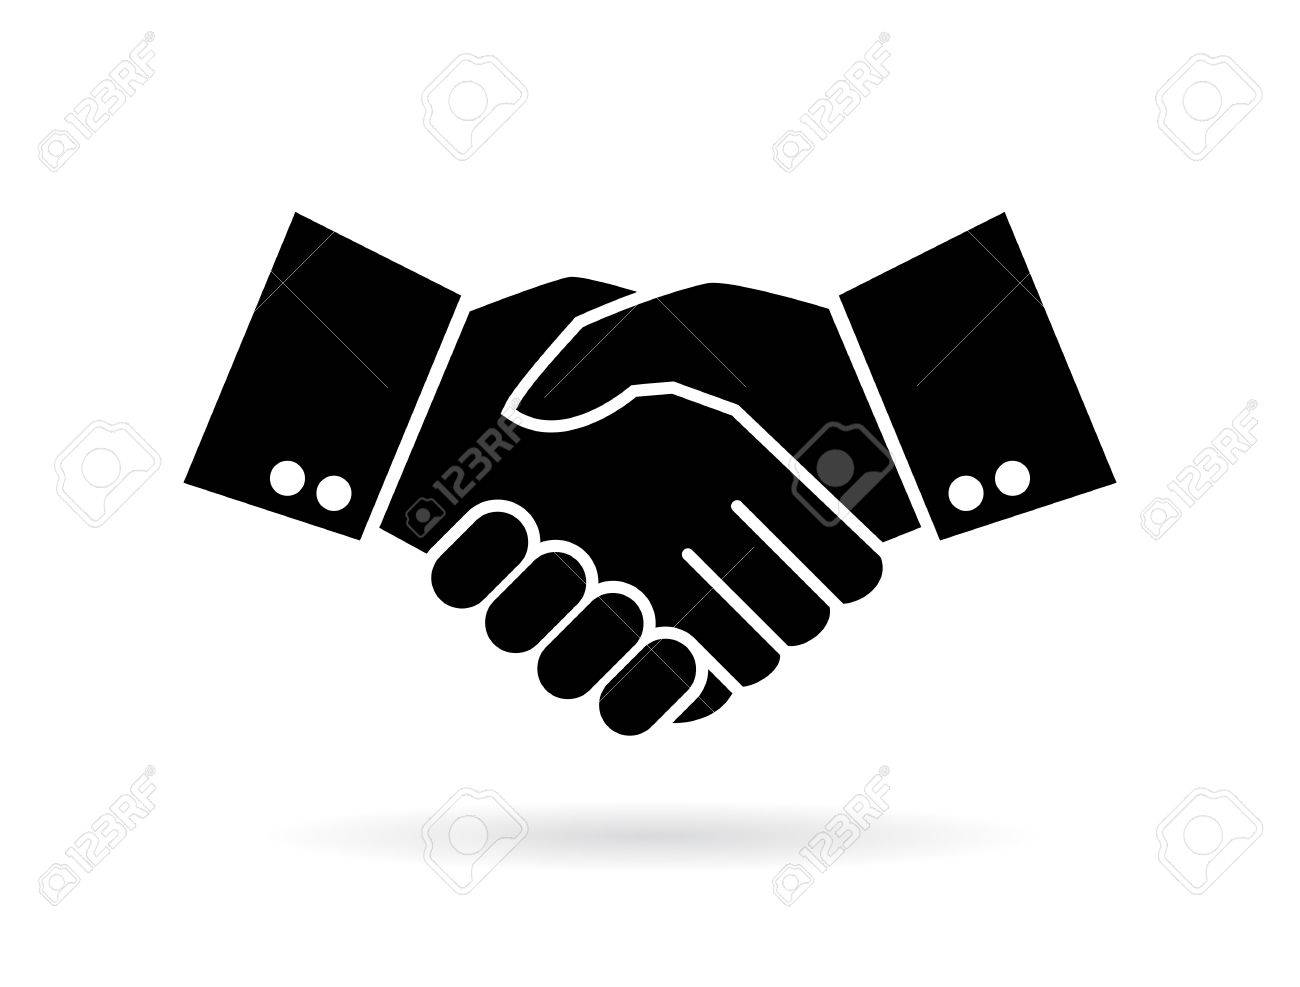 hand shake silhouette vector icon royalty free cliparts vectors rh 123rf com shaking hands vector png shaking hands vector free download